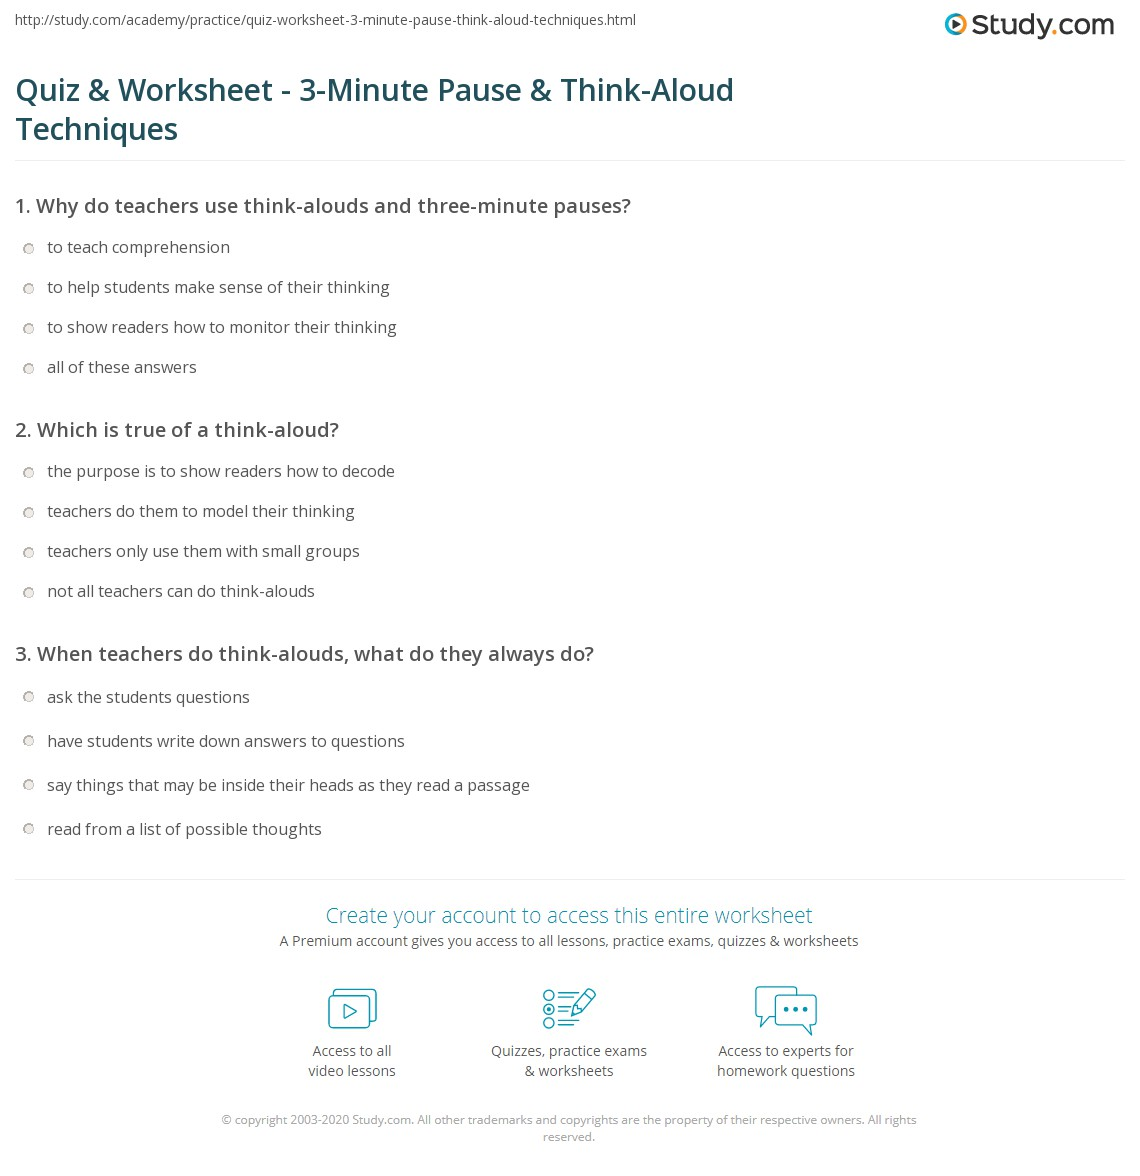 Quiz & Worksheet - 3-Minute Pause & Think-Aloud Techniques ...